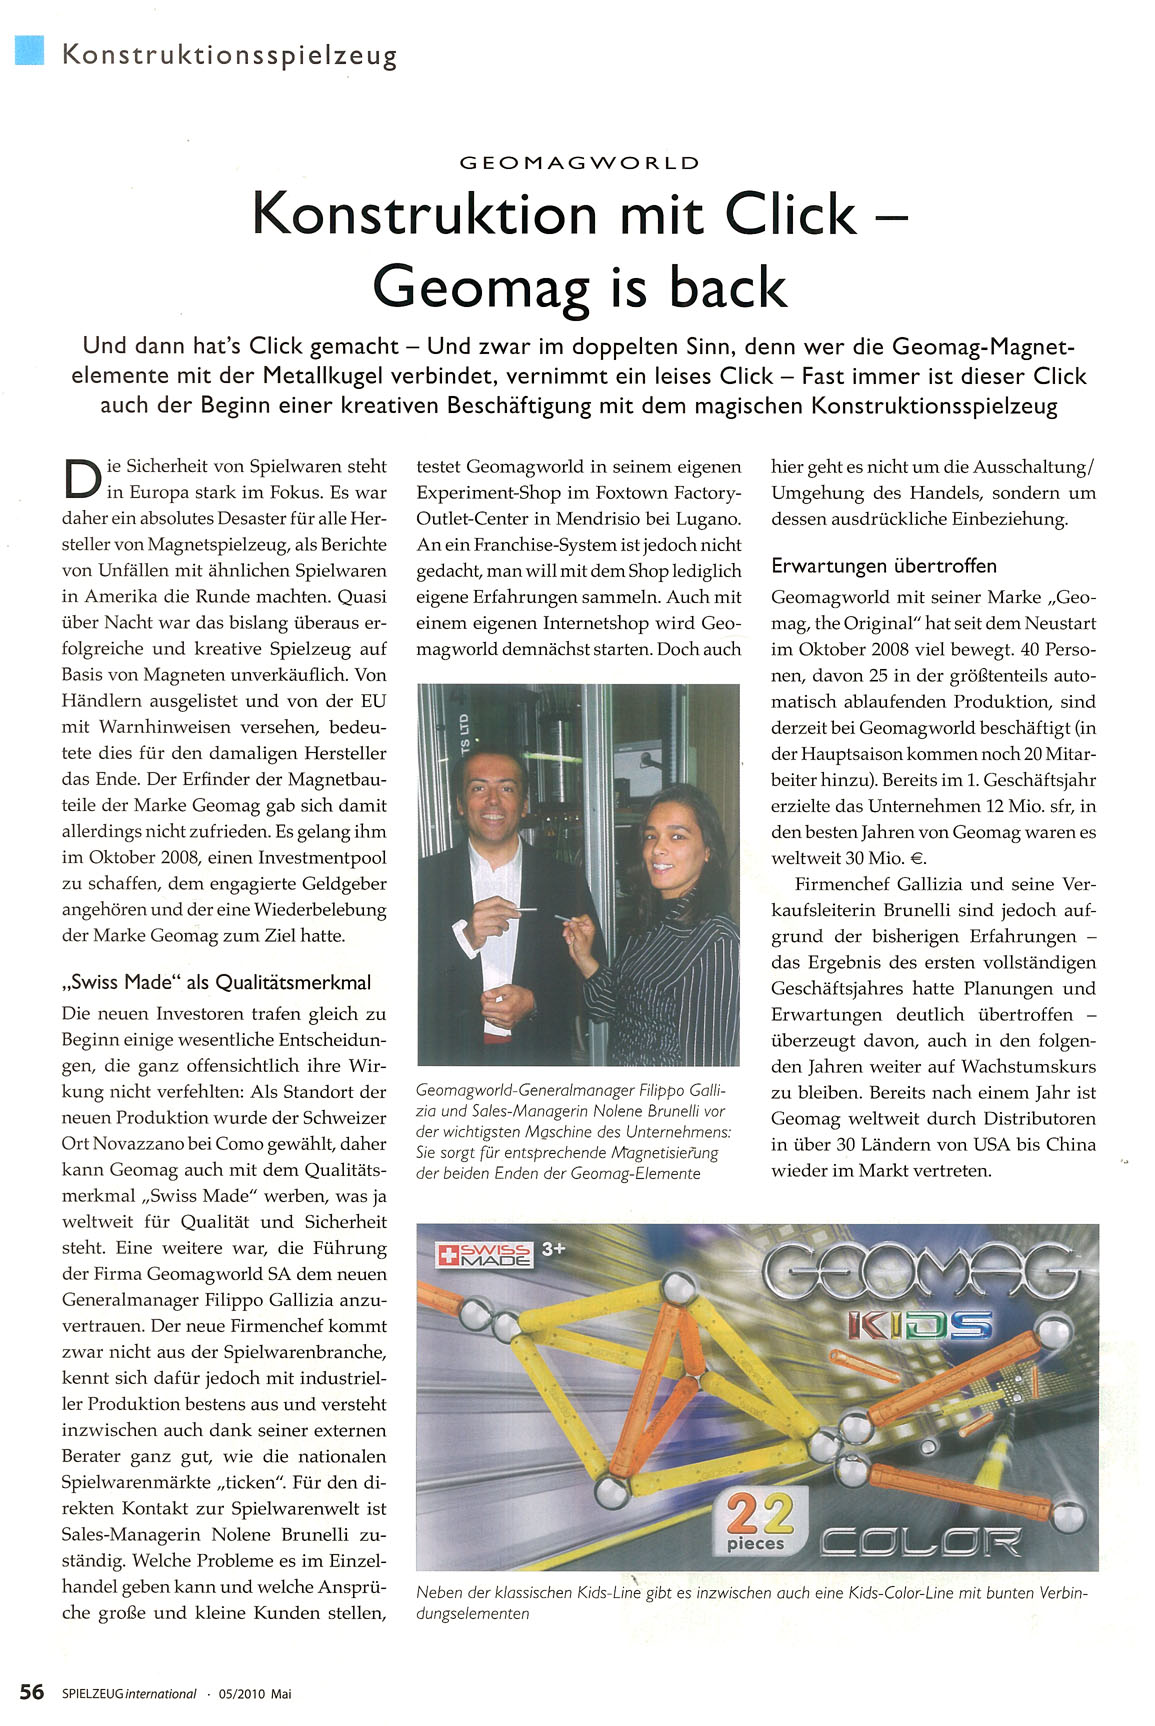 Geomag article page 1 - Spielzeug International May 2010.jpg